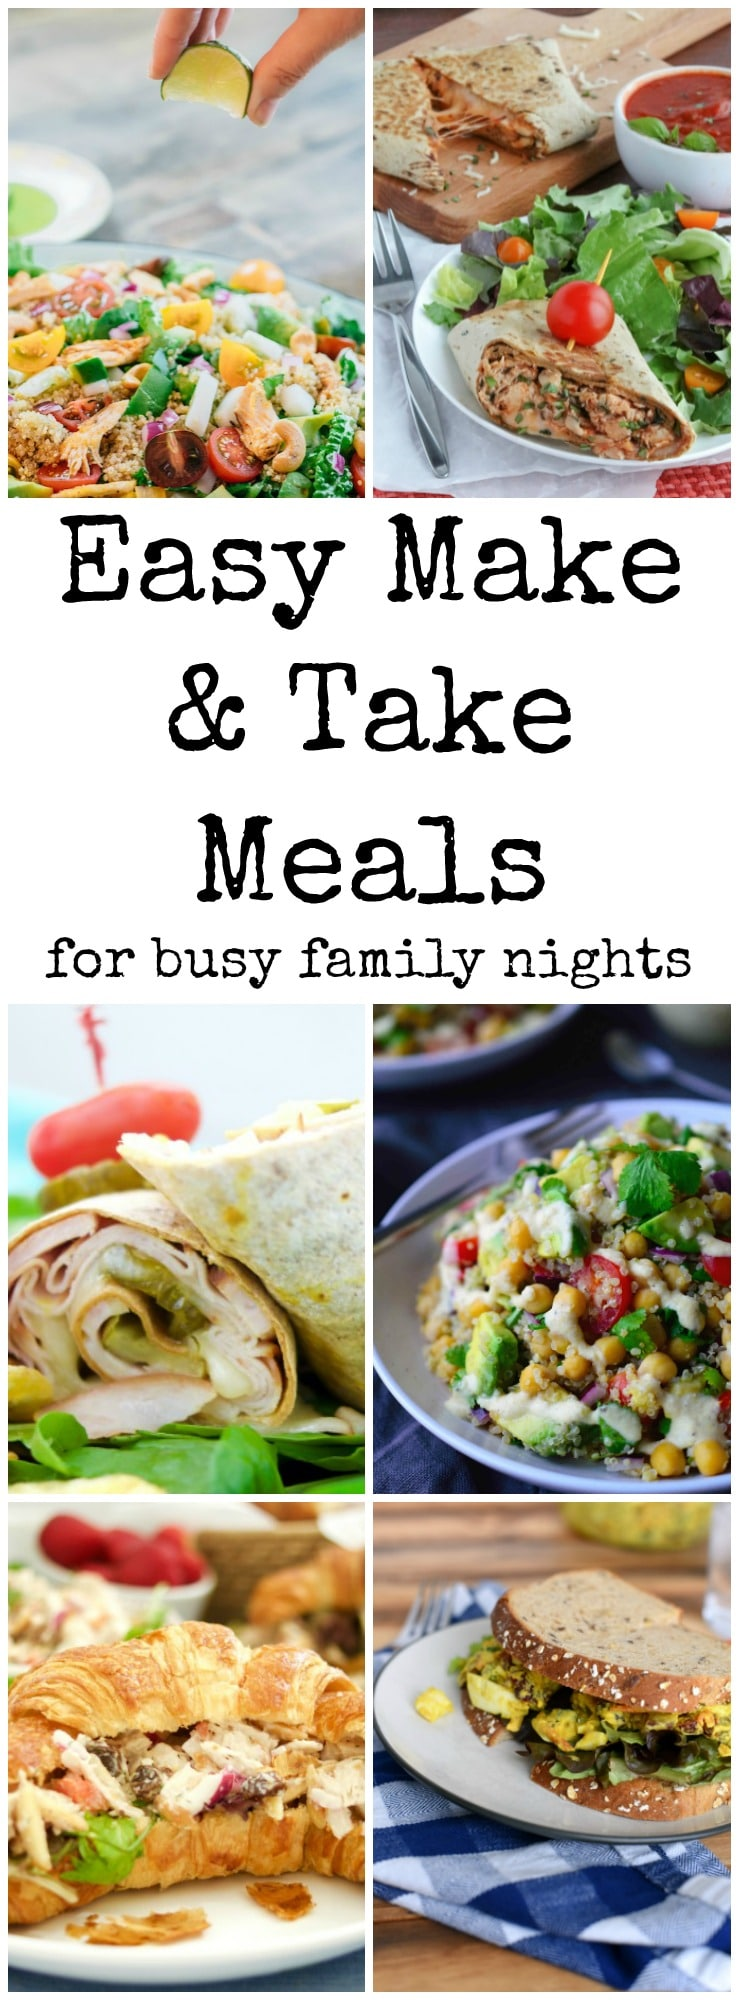 Have a busy night schedule with lessons, soccer practice and the baseball field? These easy take and make meals are perfect healthy picnics for your family!